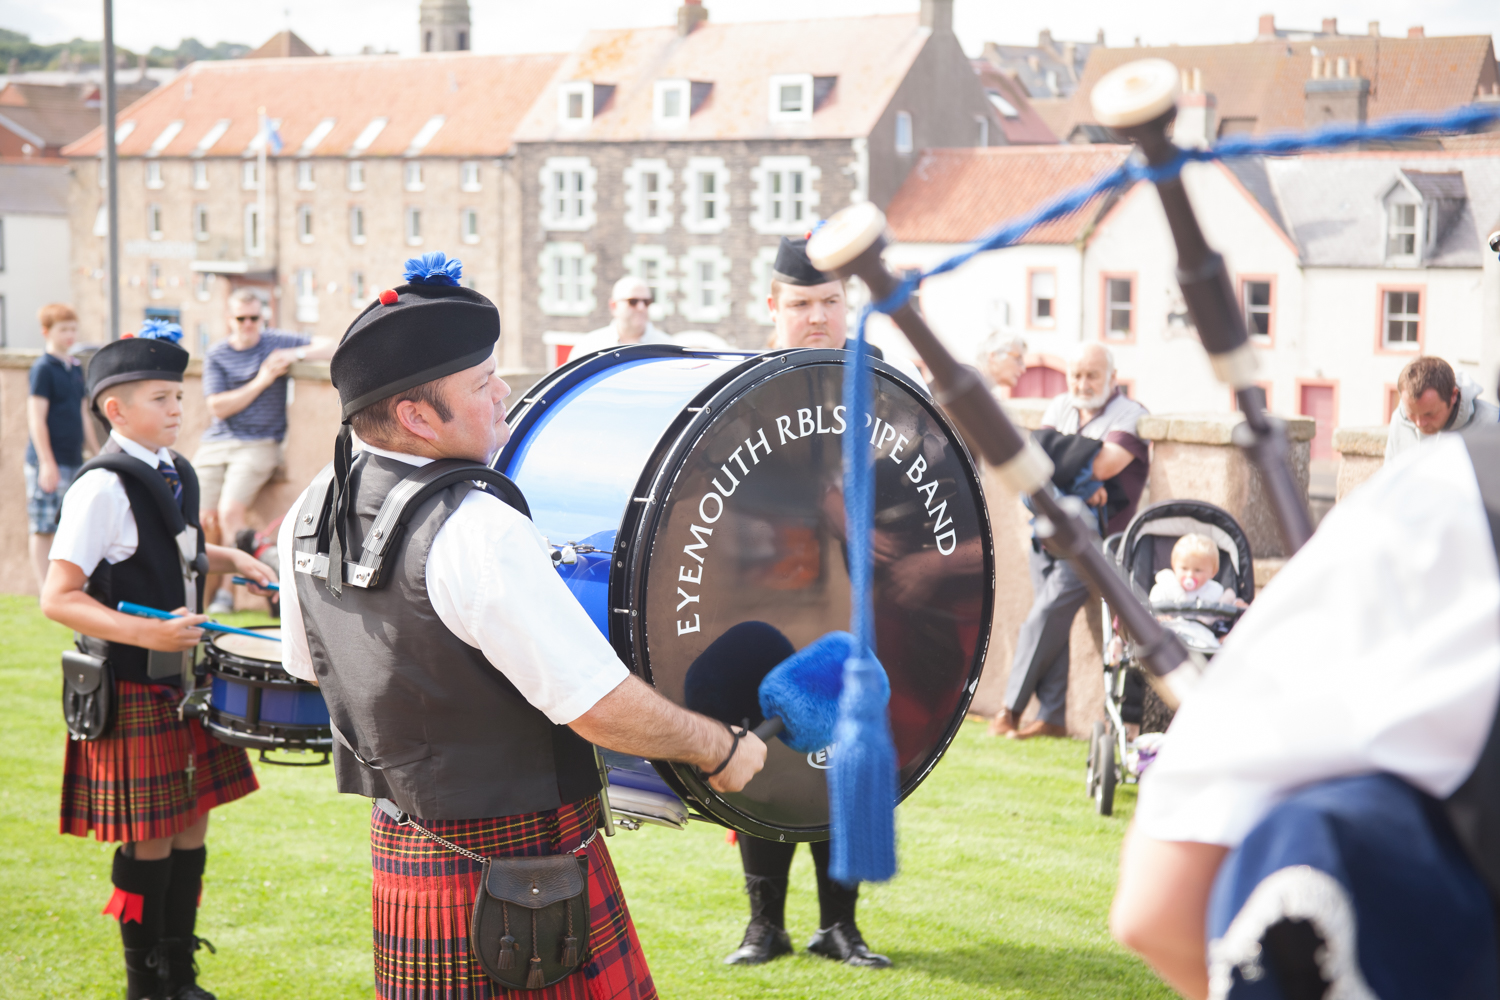 PICTORIAL_BERWICK_eyemouth-gunsgreen-extravaganza-photography-entertainment-party-event-photographer-harbour-gary-dunn-dancers-stilts-performances-speeches-day-out-summer-4549.jpg